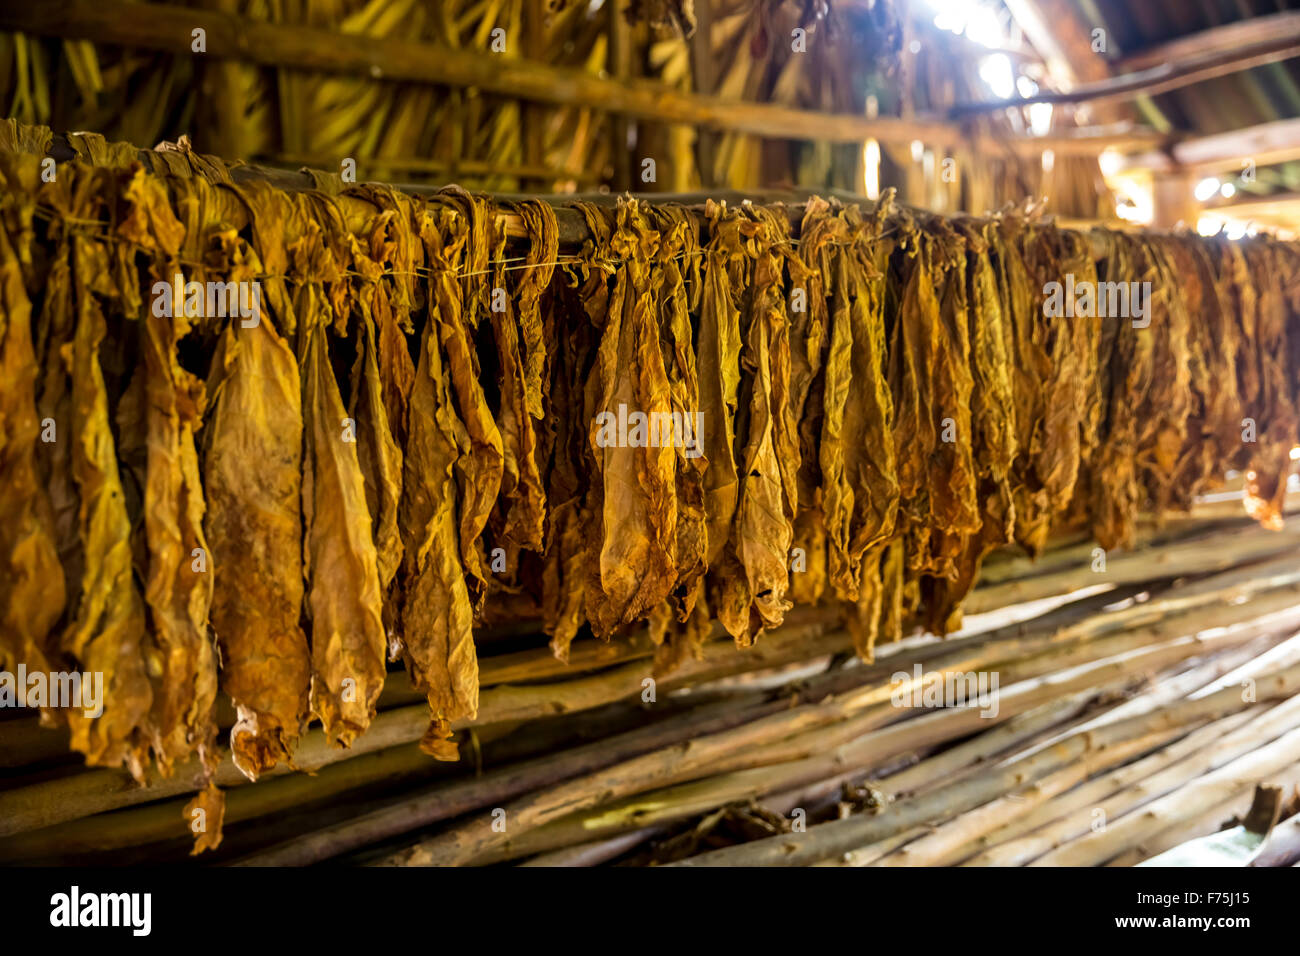 dried tobacco leaves in a tobacco barn, Tobacco Farm in Vinales Valley, Vinales, Cuba, Pinar del Río, Cuba Stock Photo